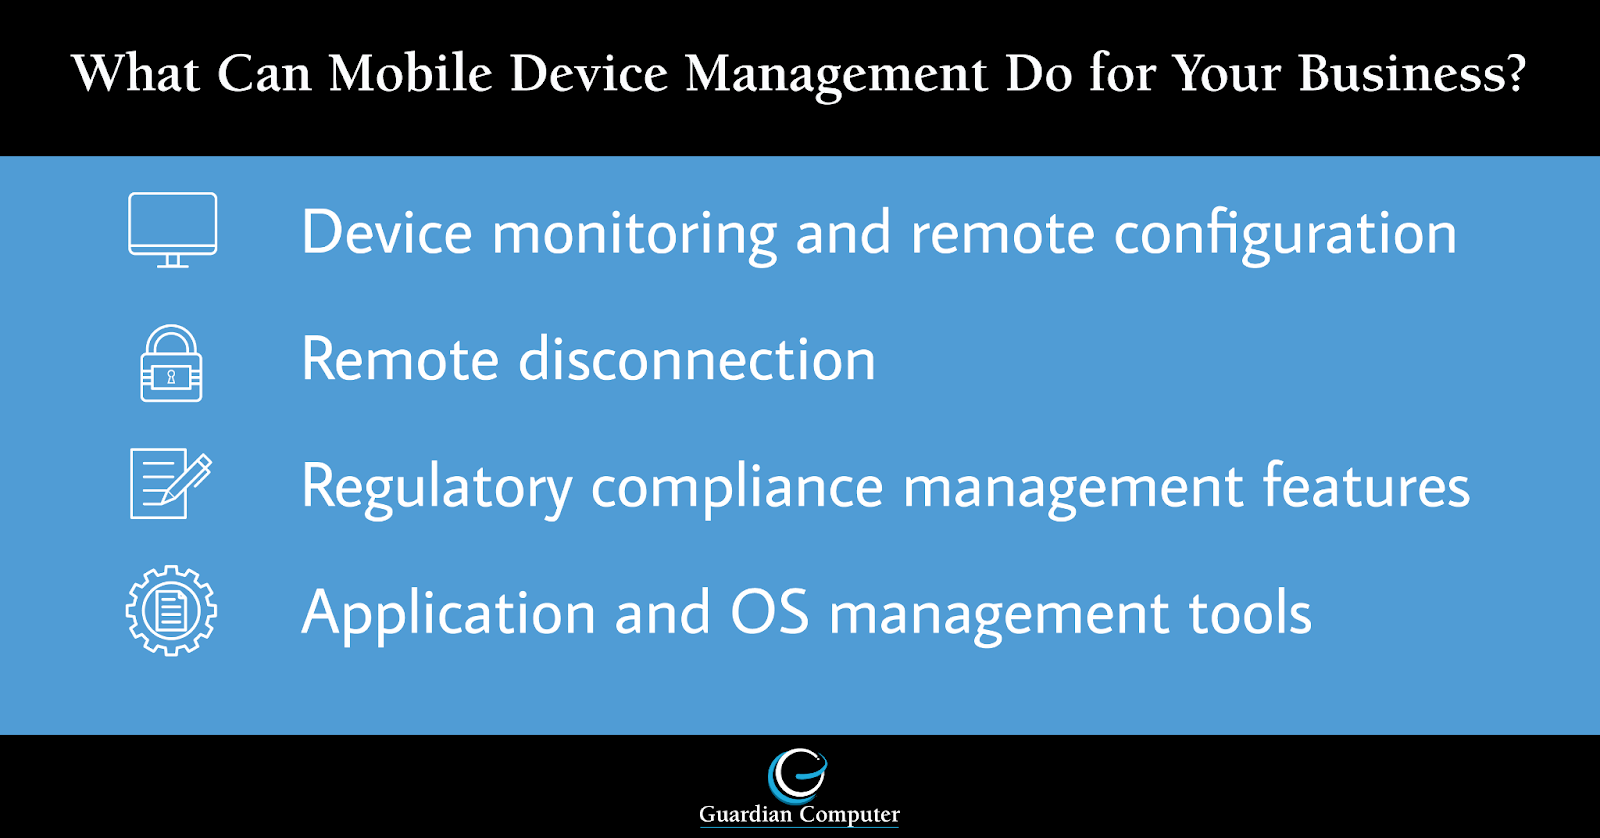 Keep reading or check out our infographic to learn about the top benefits of mobile device management.